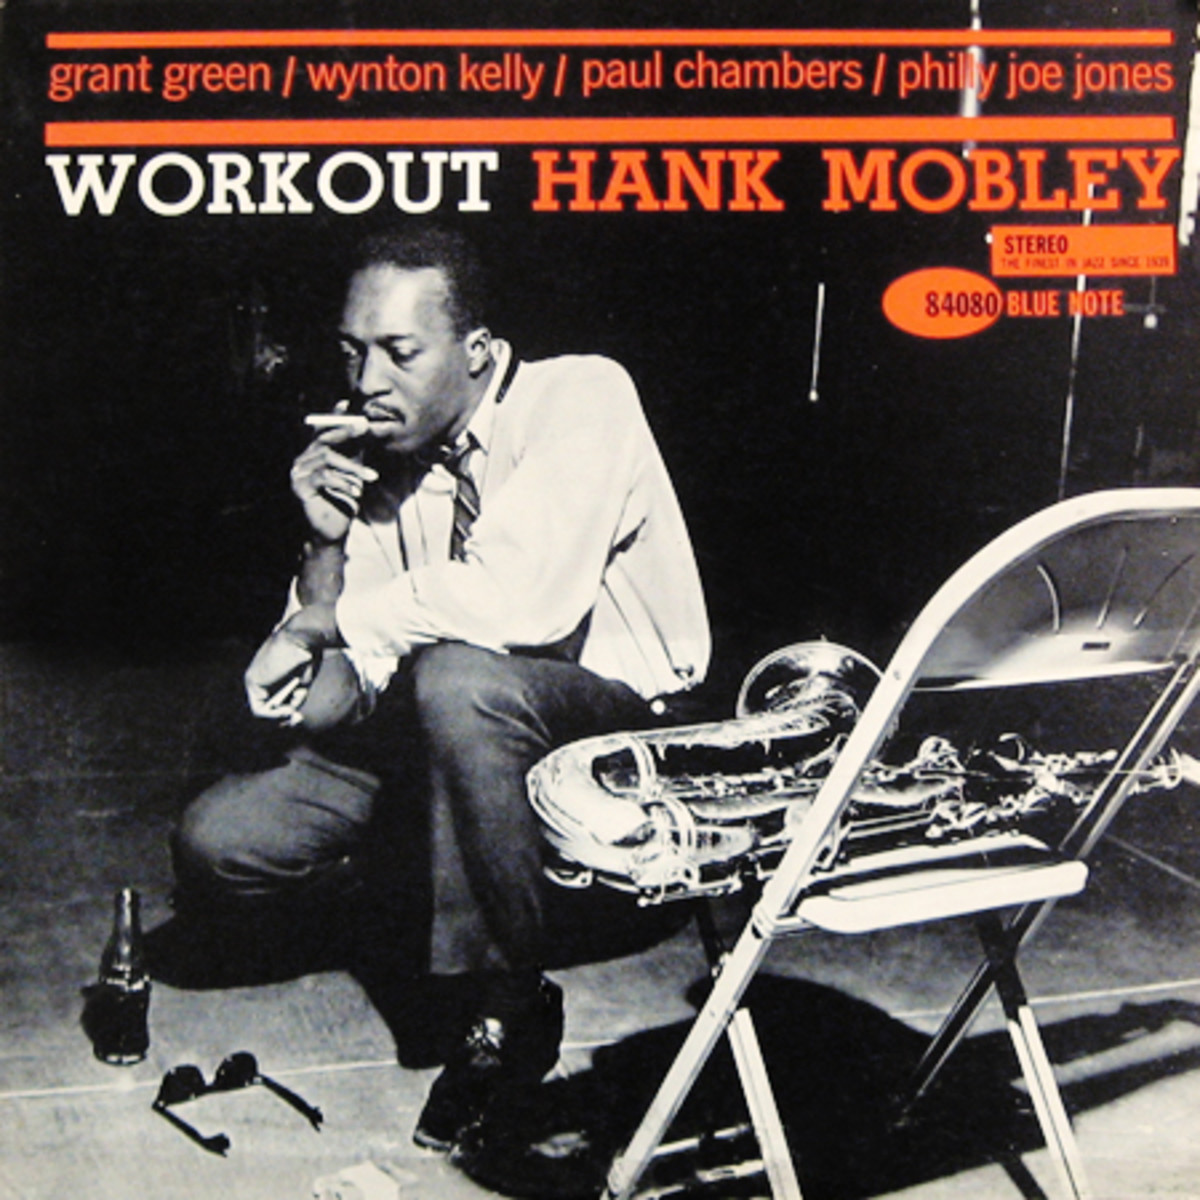 "Hank Mobley ""Workout"" Blue Note Records 4080 12"" LP Vinyl Record (1961) Album Cover Design by Reid Miles, Photo by Francis Wolff"